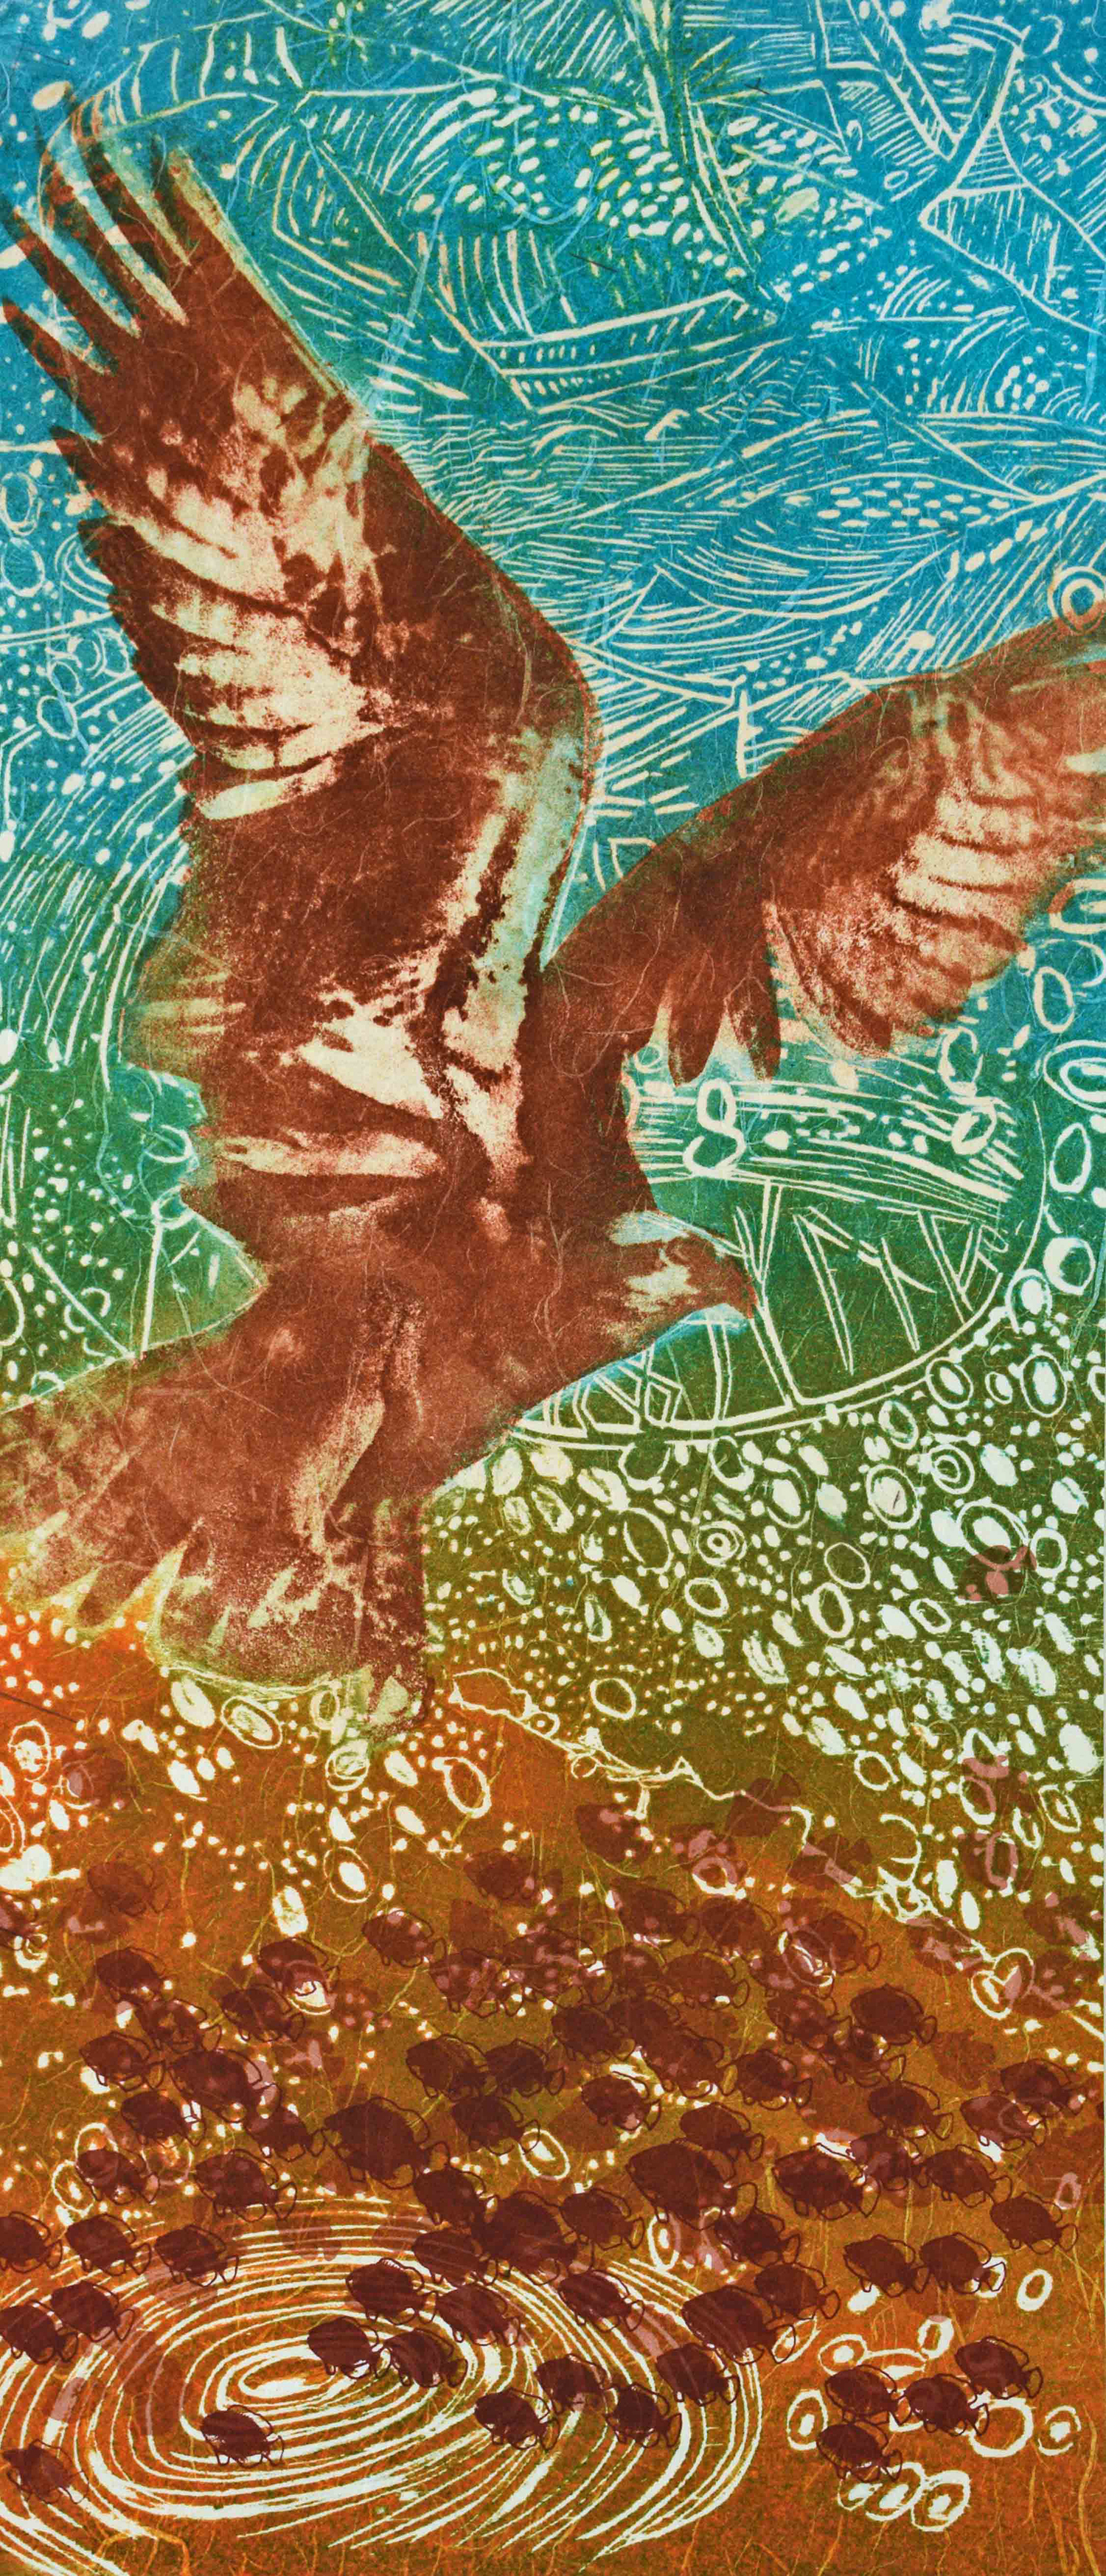 Osprey, 10 ¼ x 23 ¾ inches, Woodcut, Paper Lithography, Screenprint, Color Pencil, Japanese paper, 2018